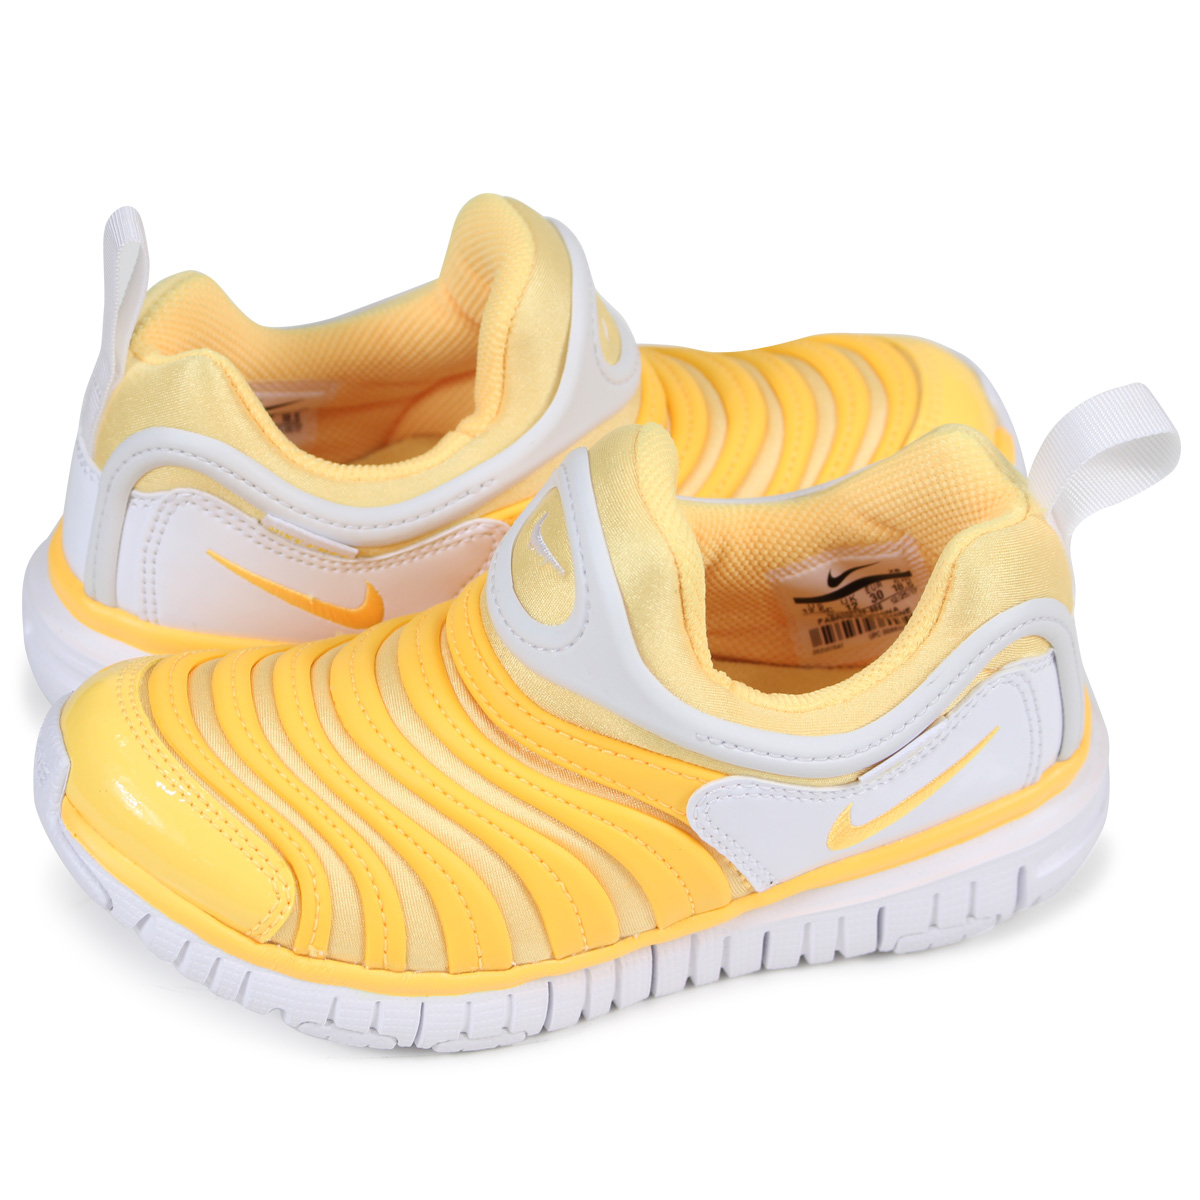 2c3f711d2887 Whats up Sports  NIKE DYNAMO FREE PS Nike dynamo-free kids sneakers ...